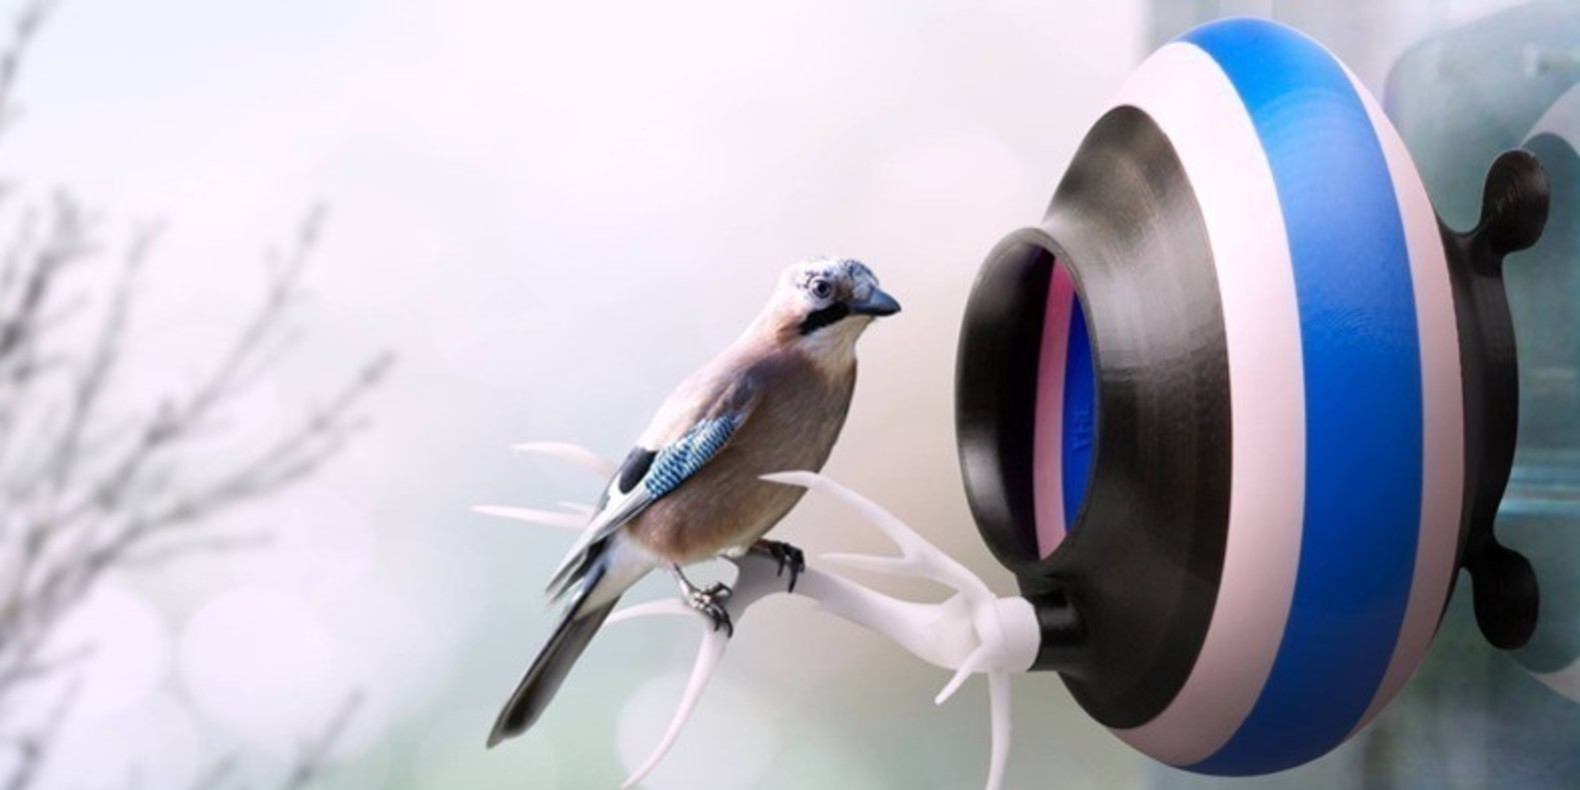 Here is a selection of the best birdhouses 3D models to make with a 3D printer